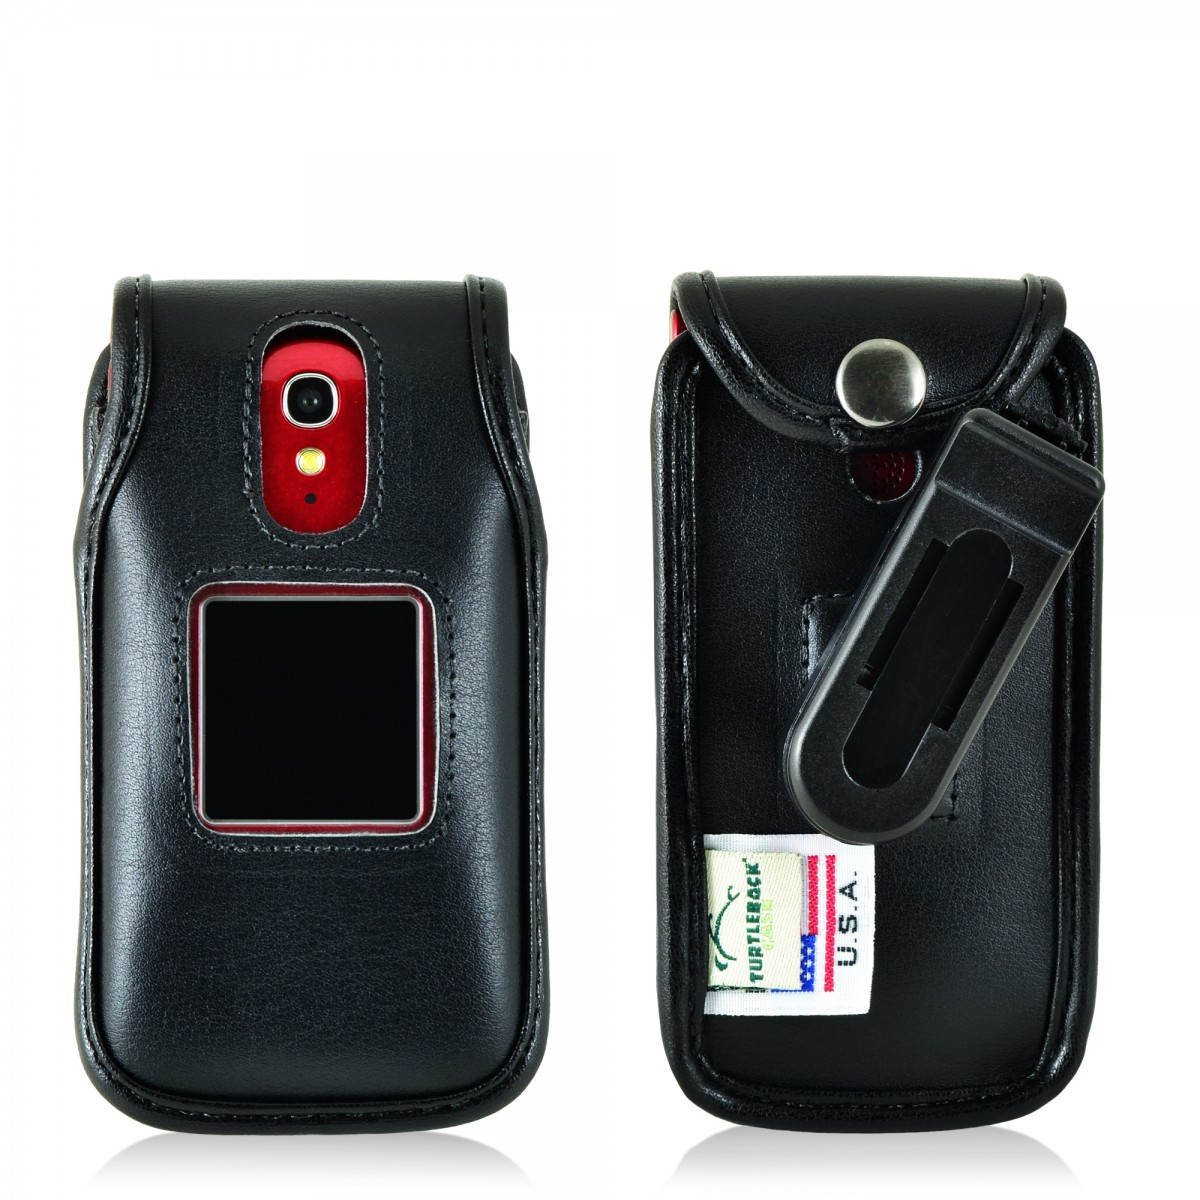 online store 2d717 15efa Jitterbug Flip Cell Phone Black Leather Fitted Case with with Rotating  Removable Belt Clip